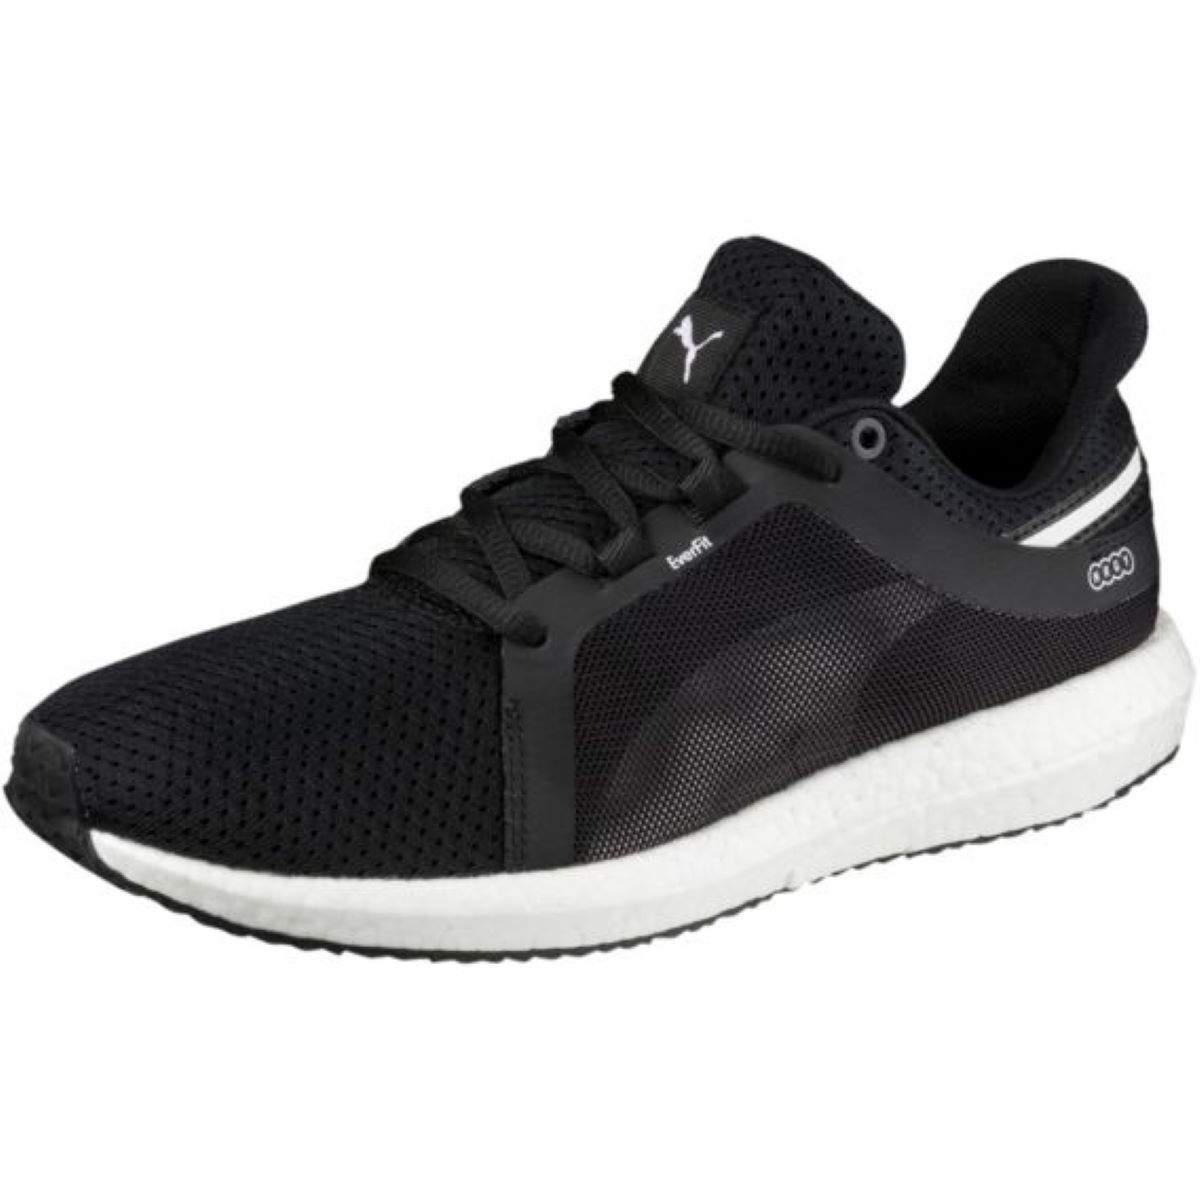 Chaussures Femme Puma Mega NRGY Turbo 2 - UK 8 black-white